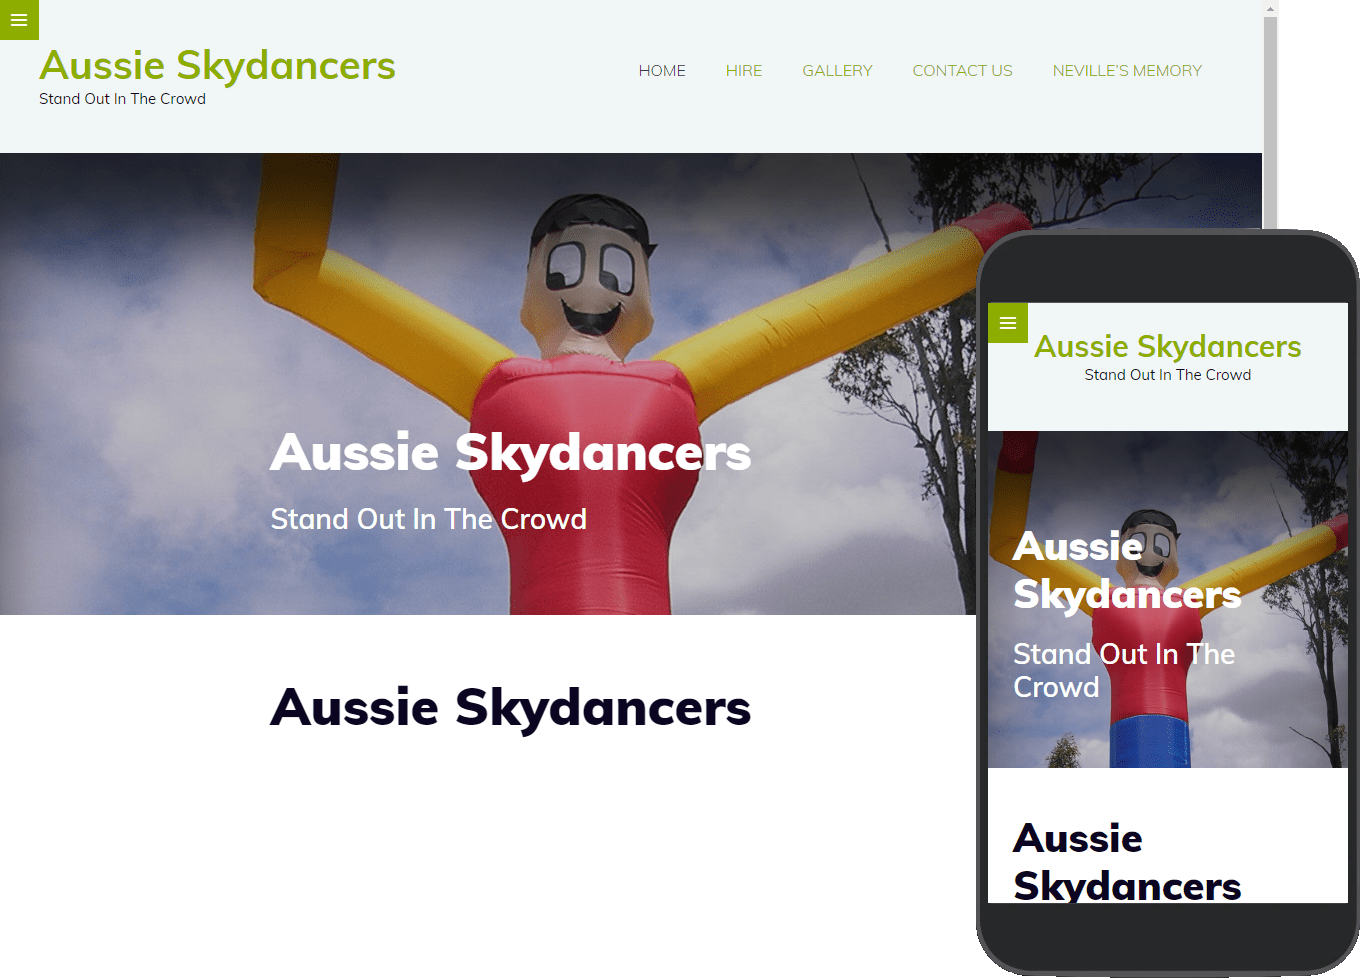 Aussie Skydancers website portfolio images of desktop and mobile view